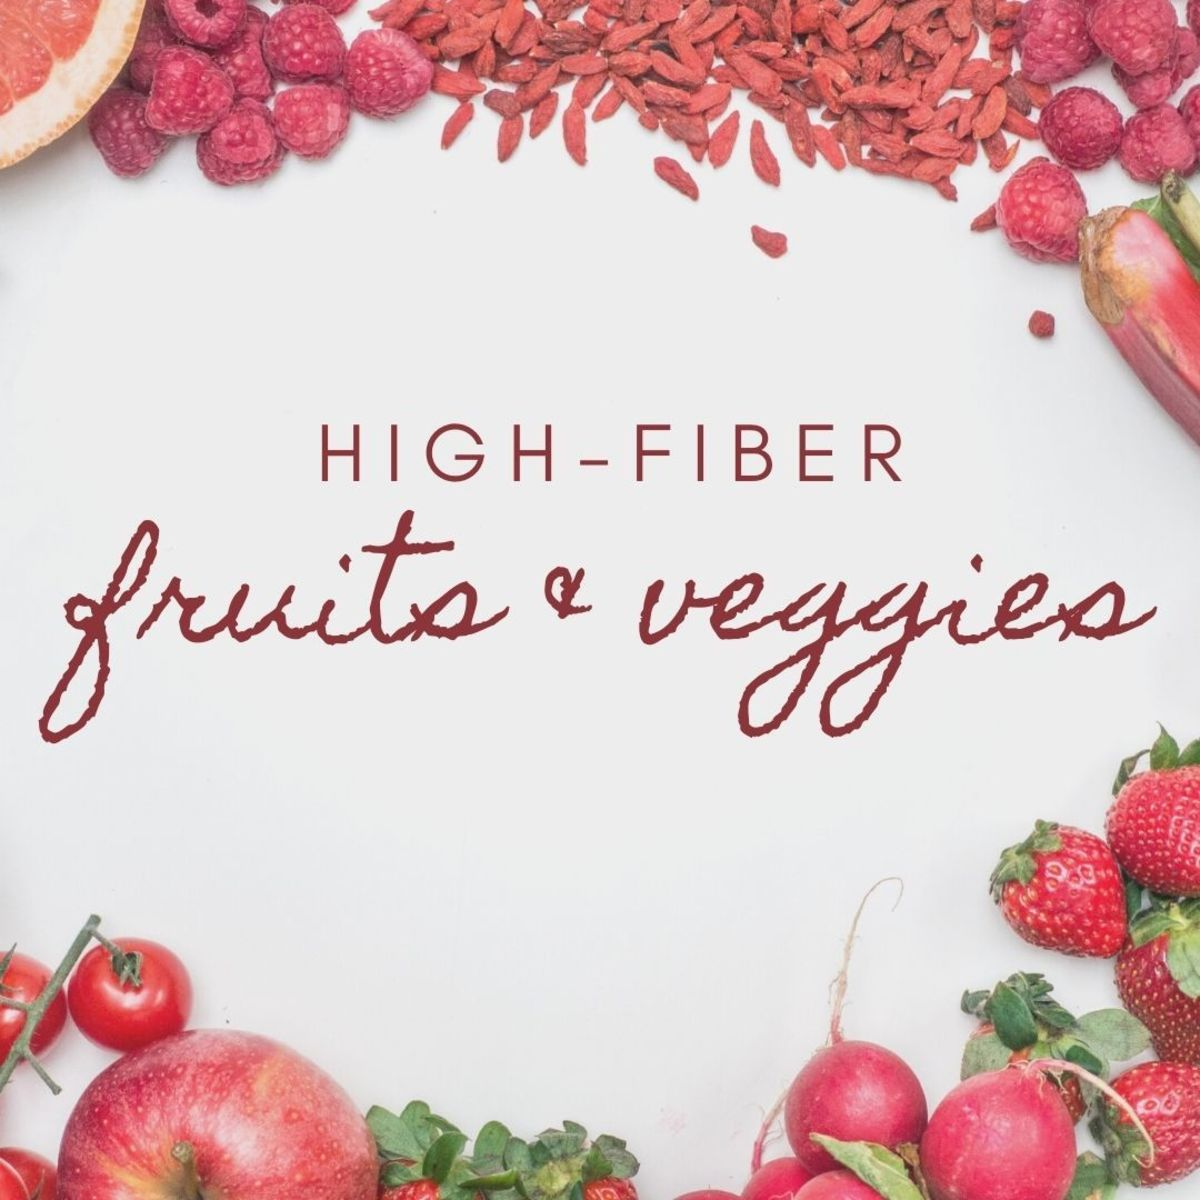 Which fruits and vegetables are high in fiber? Read on to find out!